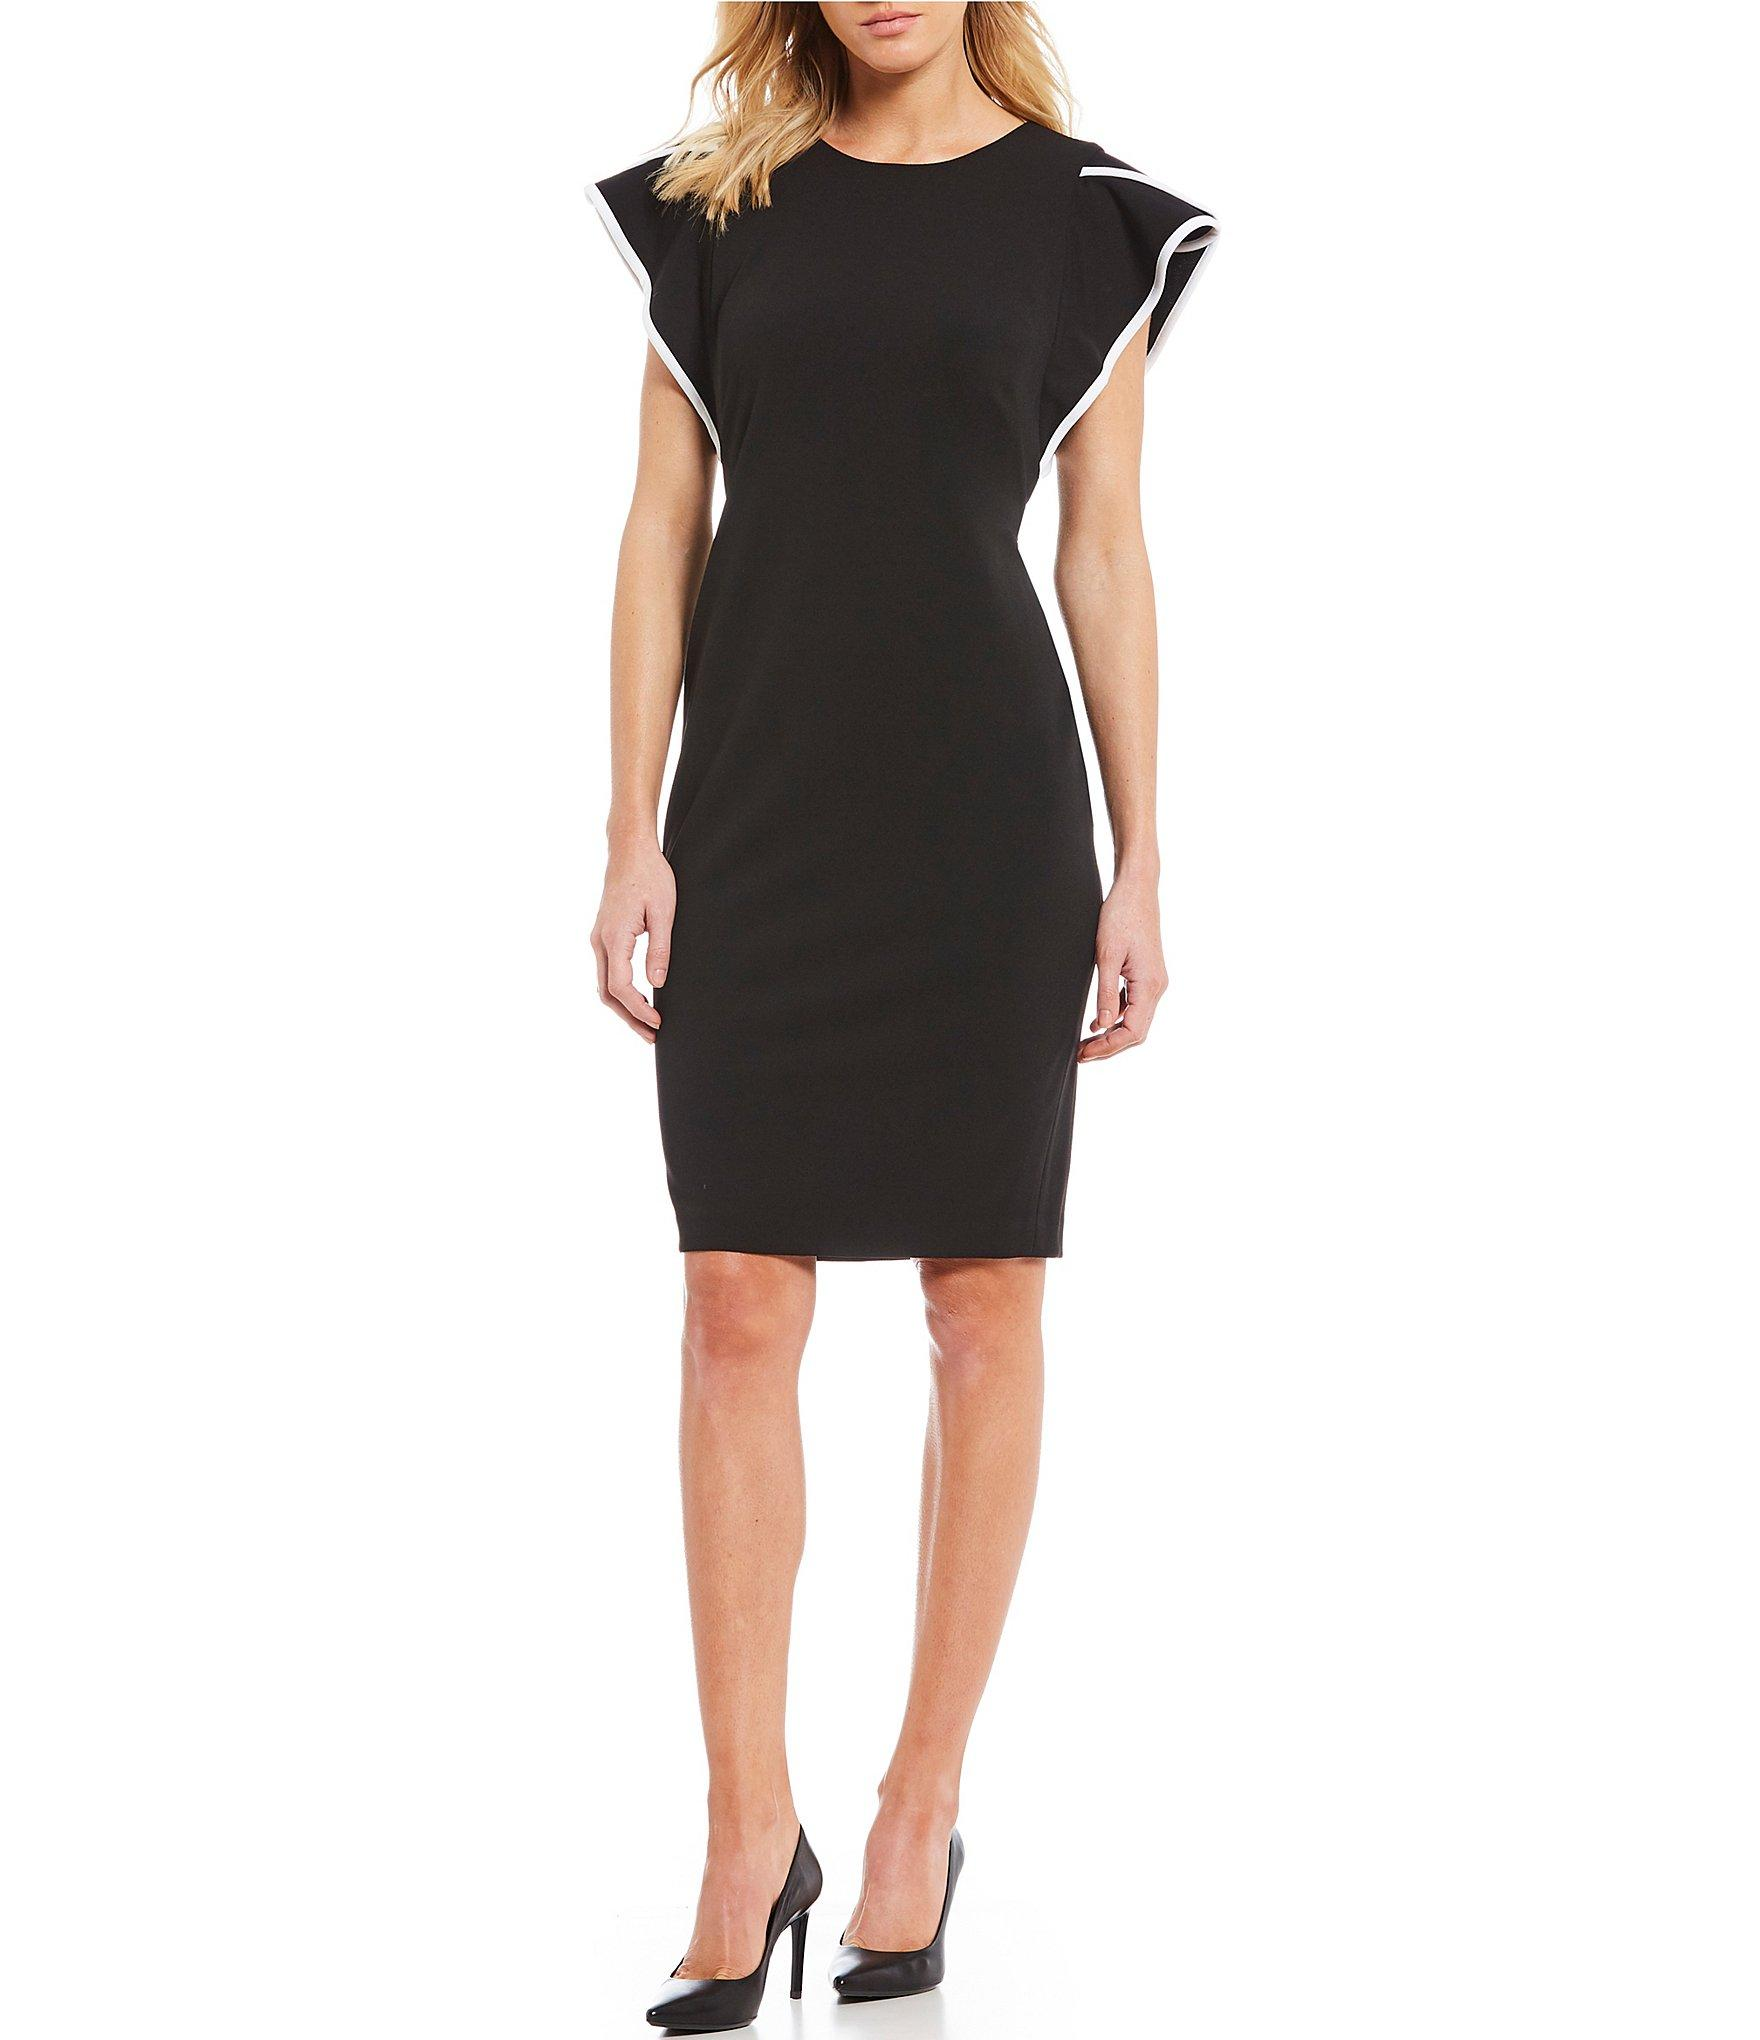 5aee54b260b Lyst - Calvin Klein Piped Ruffle Sleeve Sheath Dress in Black